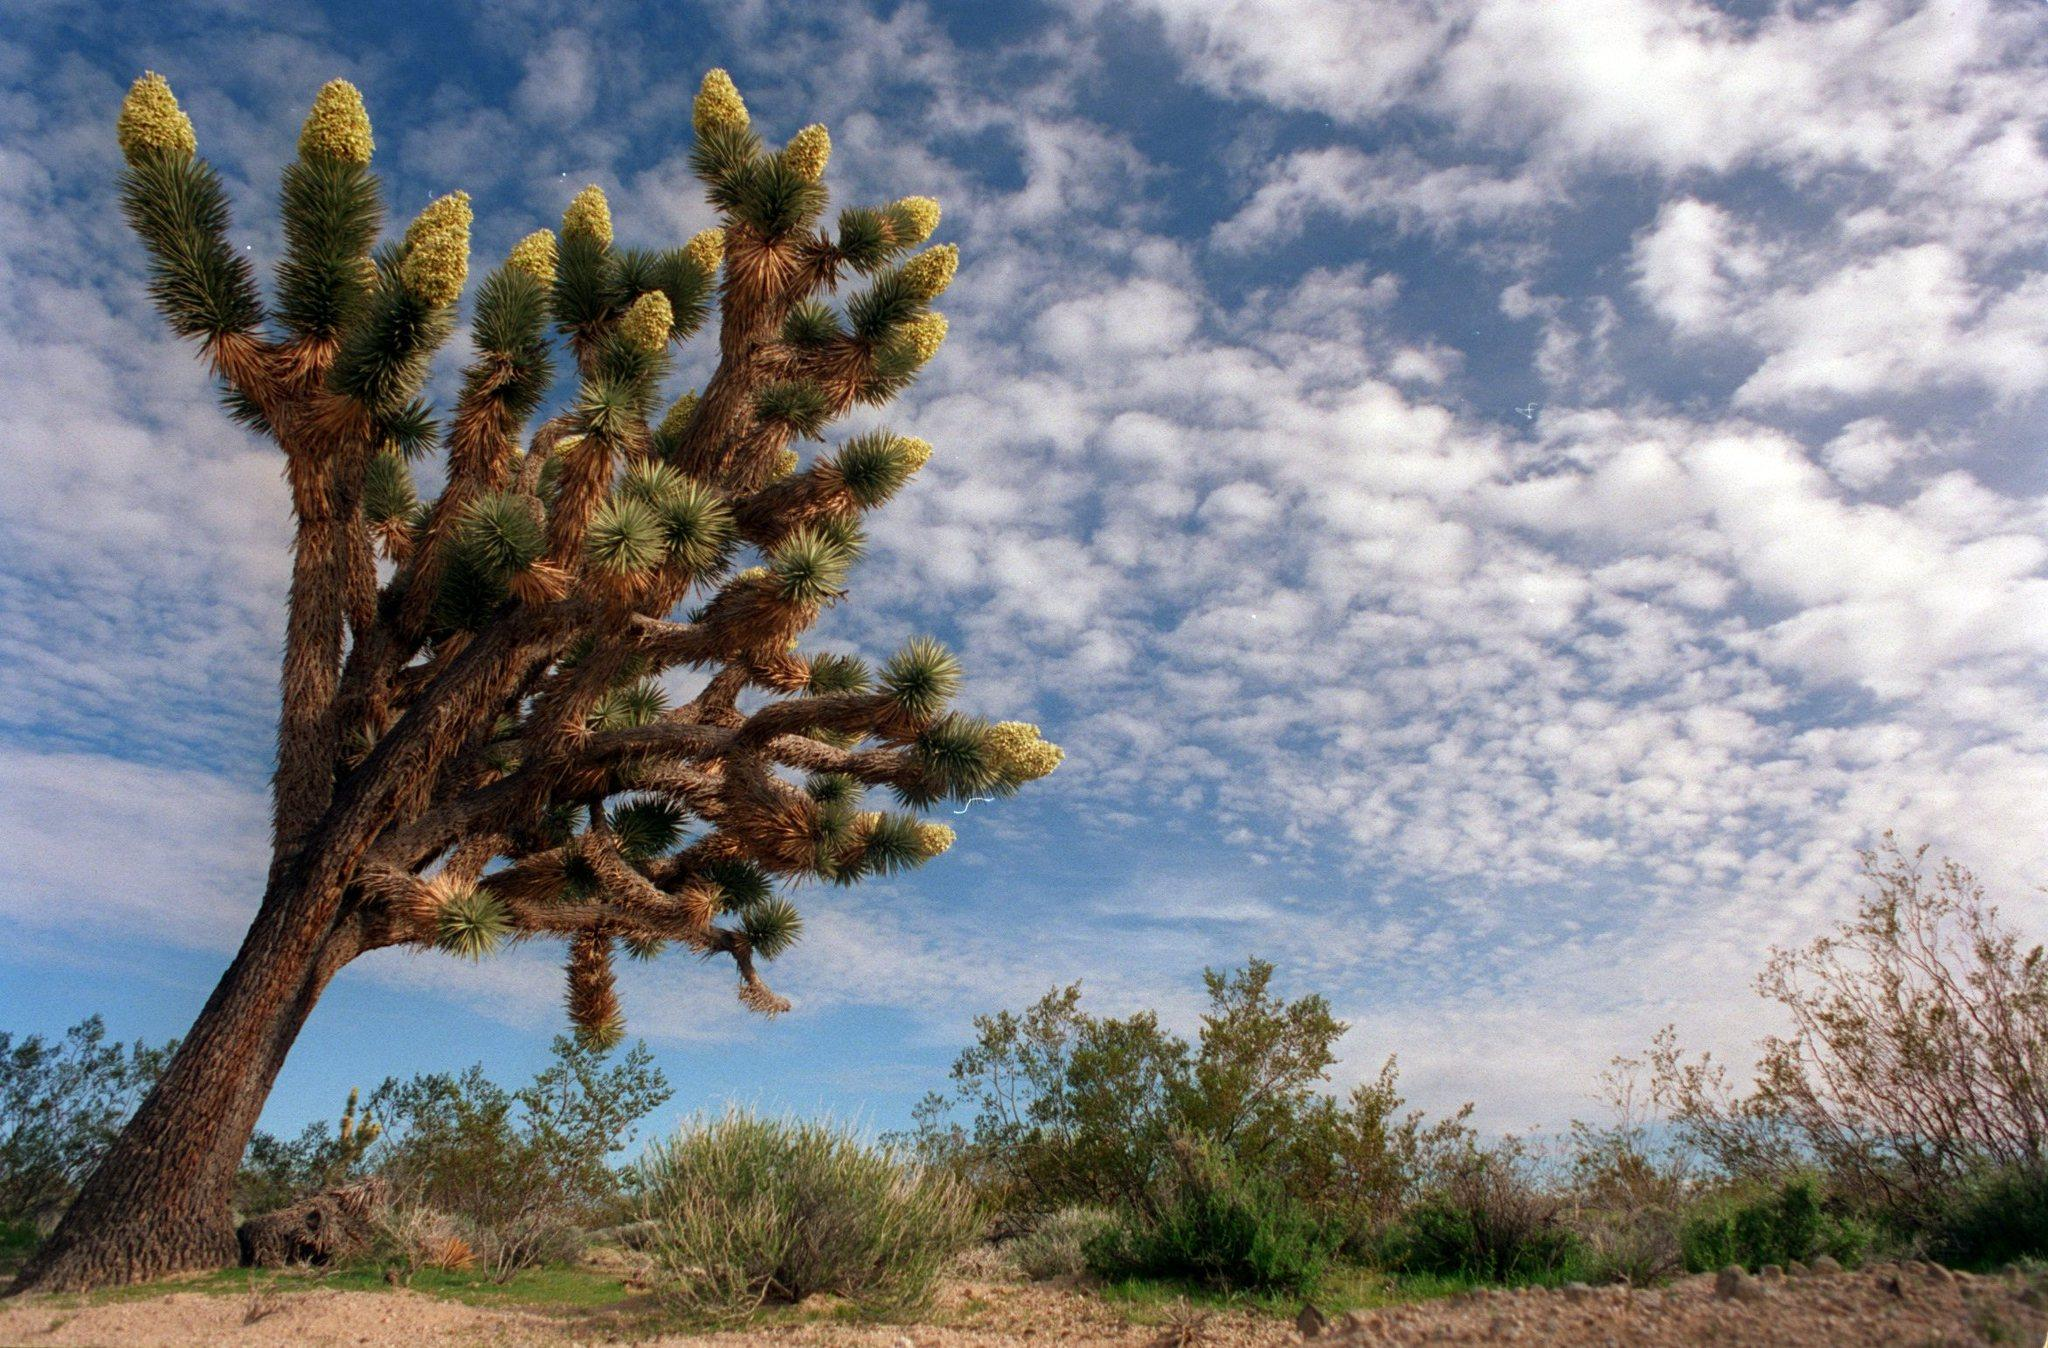 The National Geographic Society named the Mojave Desert one of the world's 100 most scenic places in 2013.